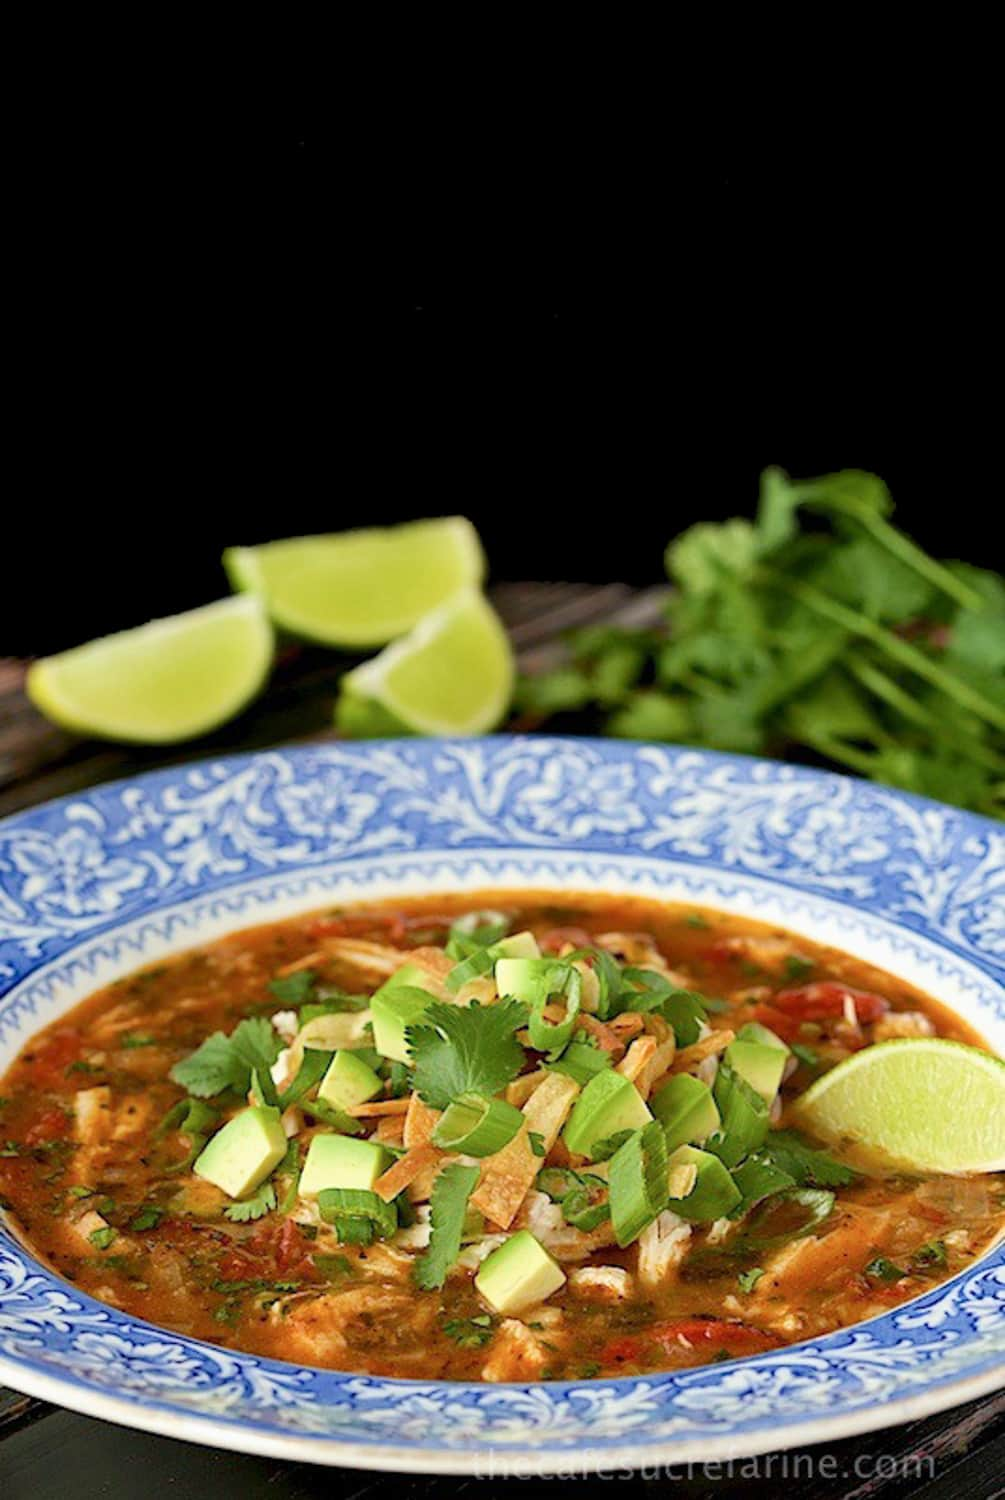 Picture of Turkey Tortilla Soup with avocado and limes in a blue and white bowl. Leftover turkey post